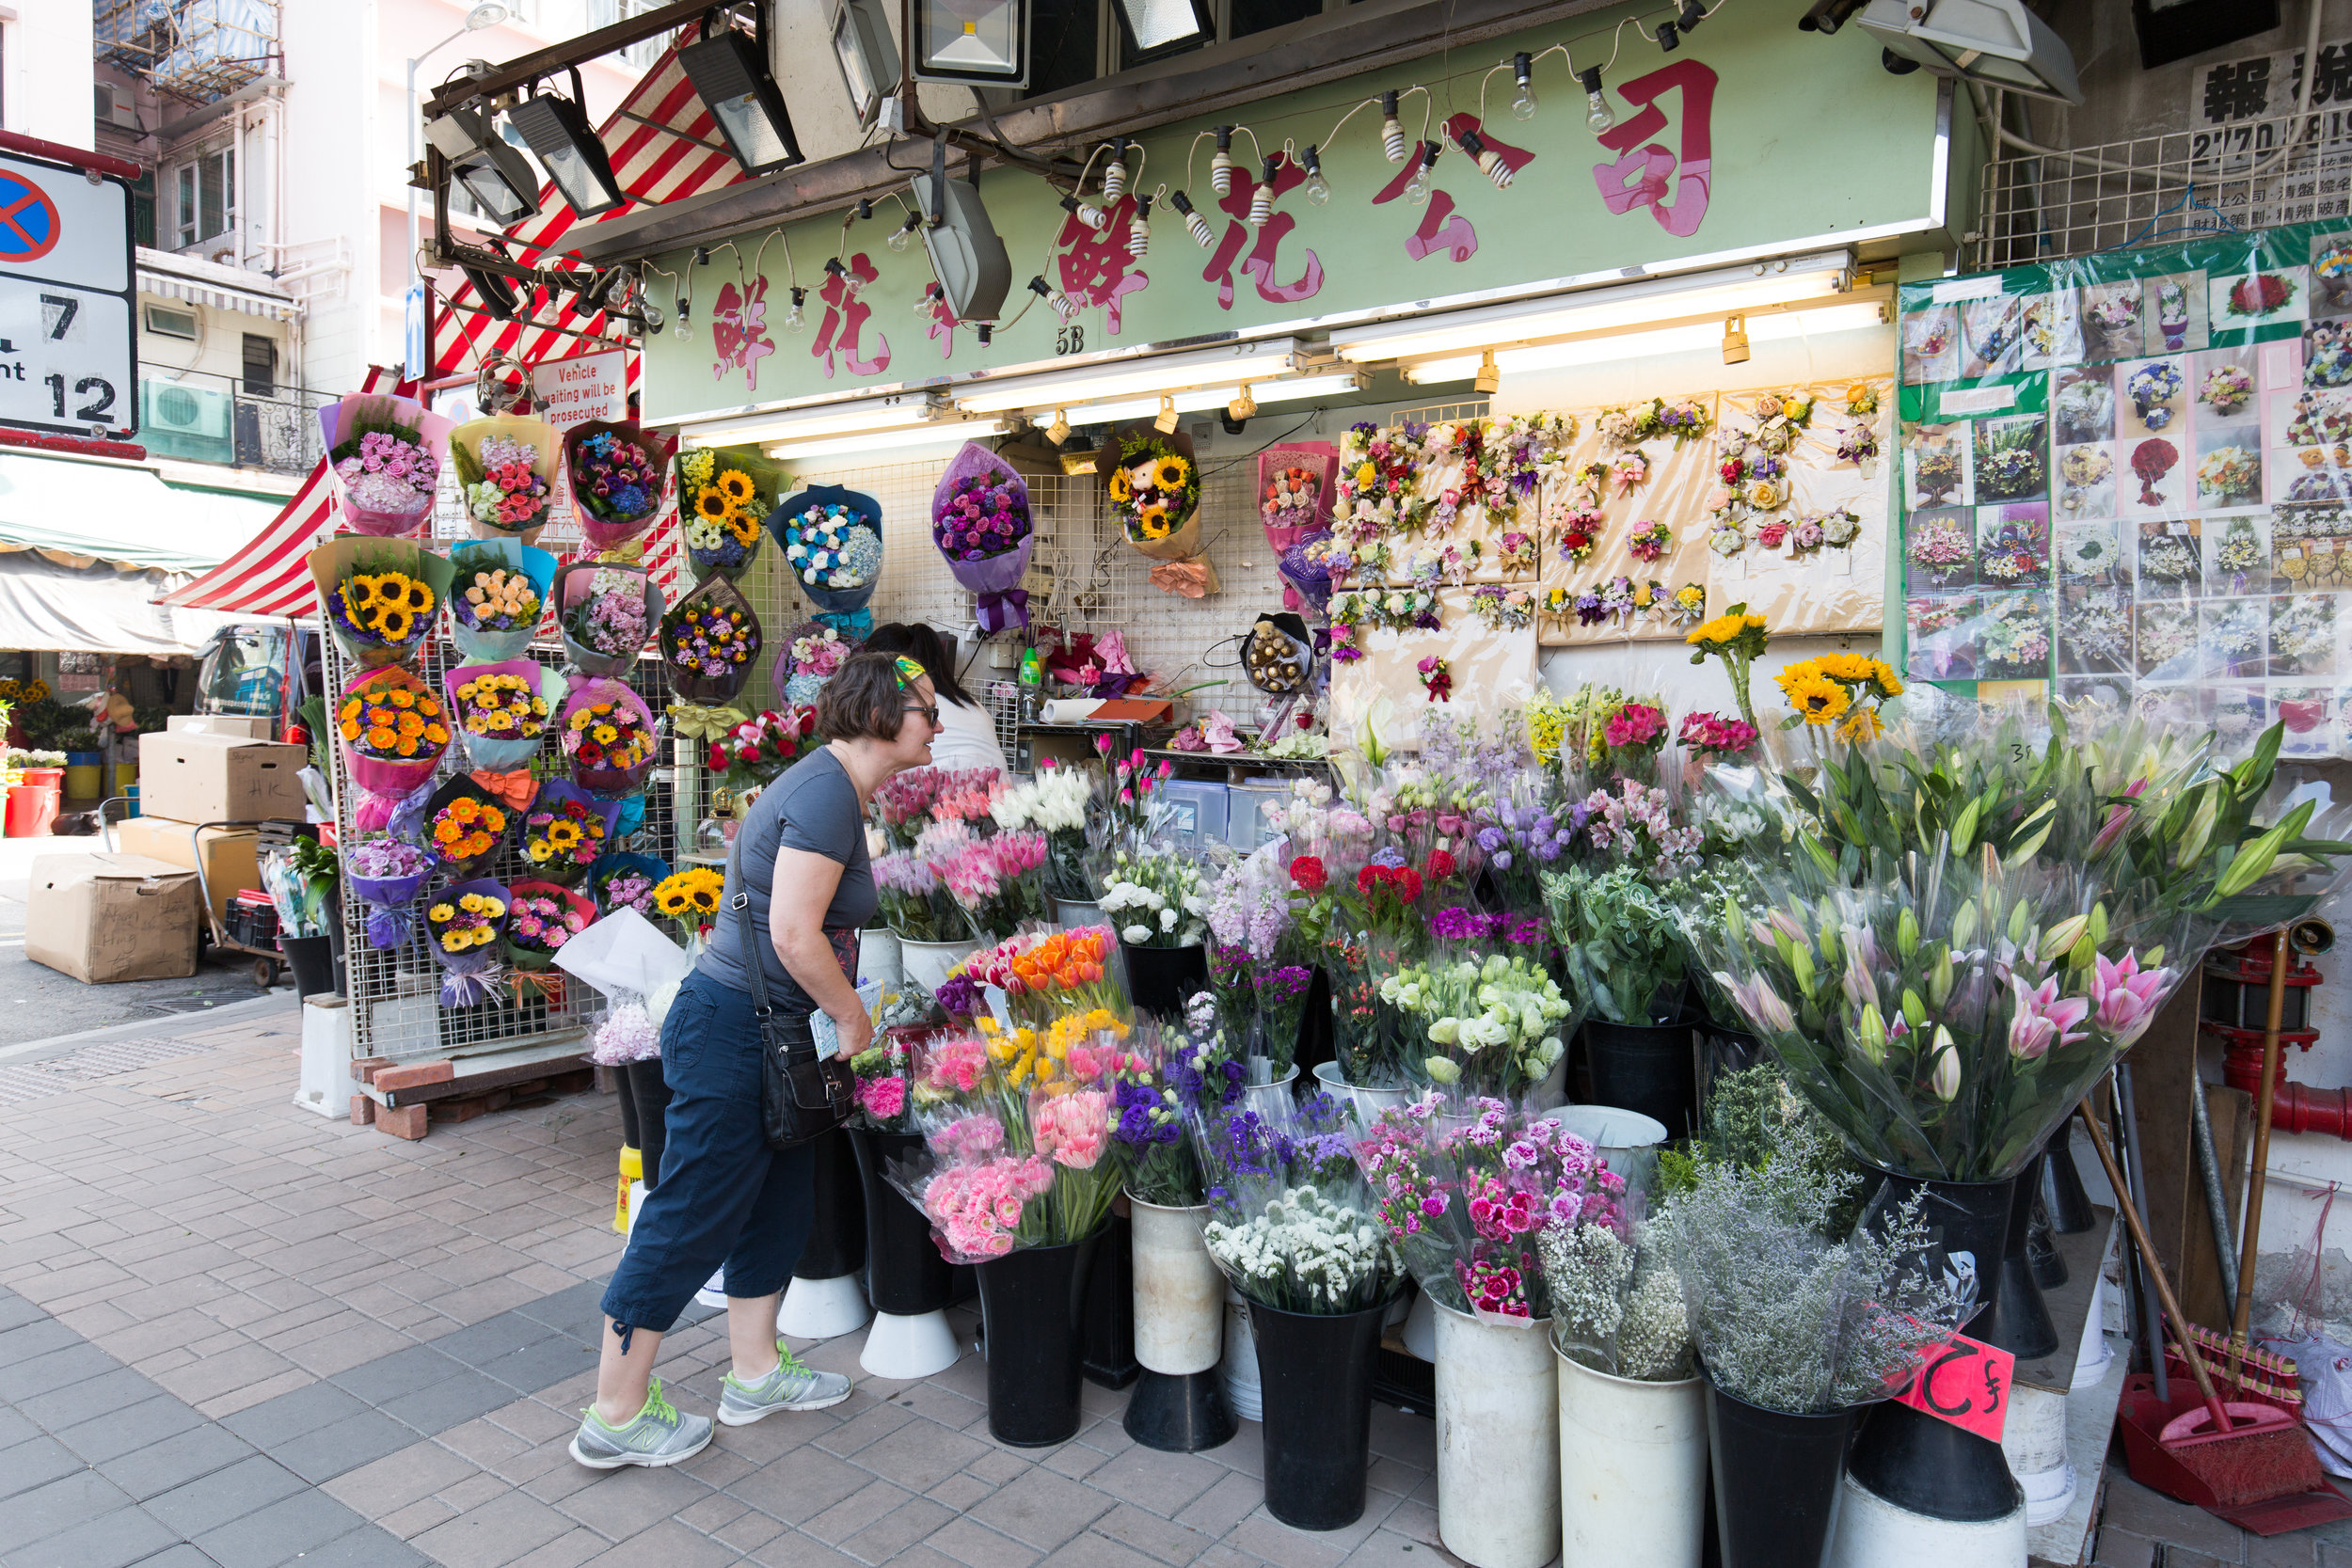 A tourist stops to look at the many bouquets at a flower shop at the flower market in mongkok Hong Kong